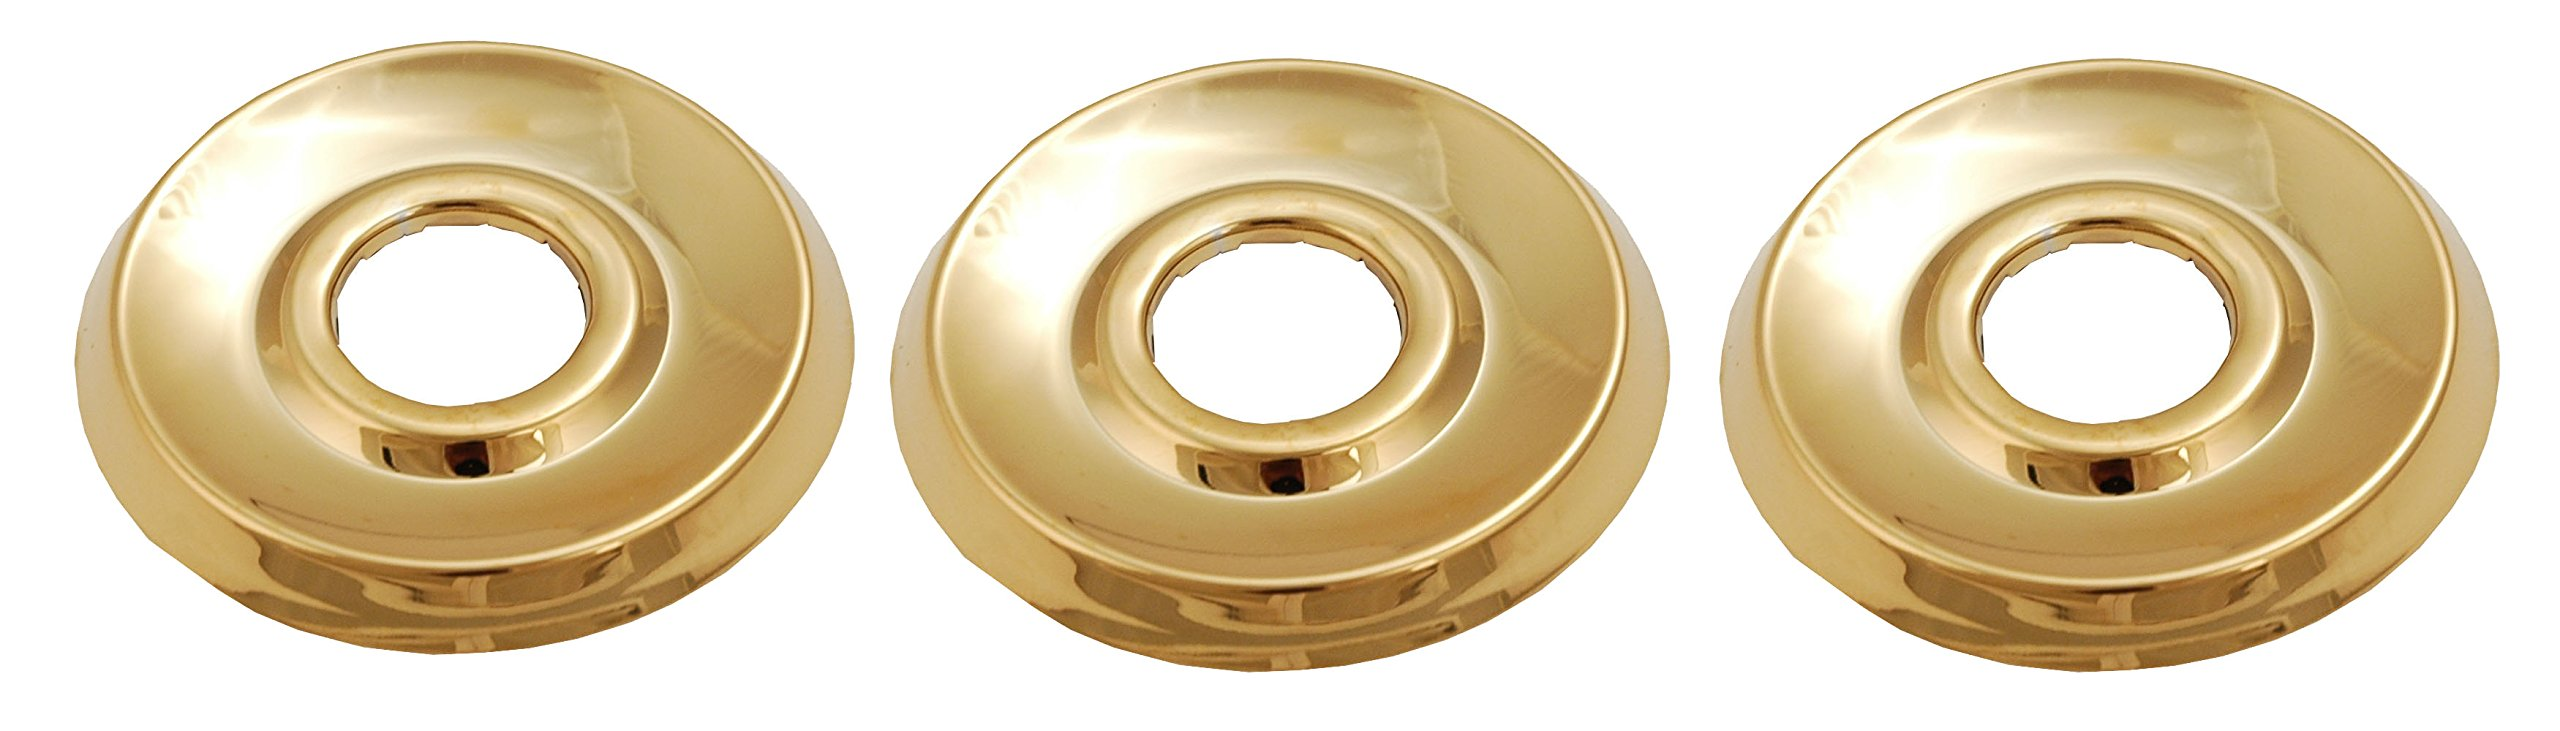 Shower Faucet Flange (3 Pieces) Fit Delta or Peerless 2- Or 3-handle Shower Valve, Polish Brass Finish - By Plumb USA